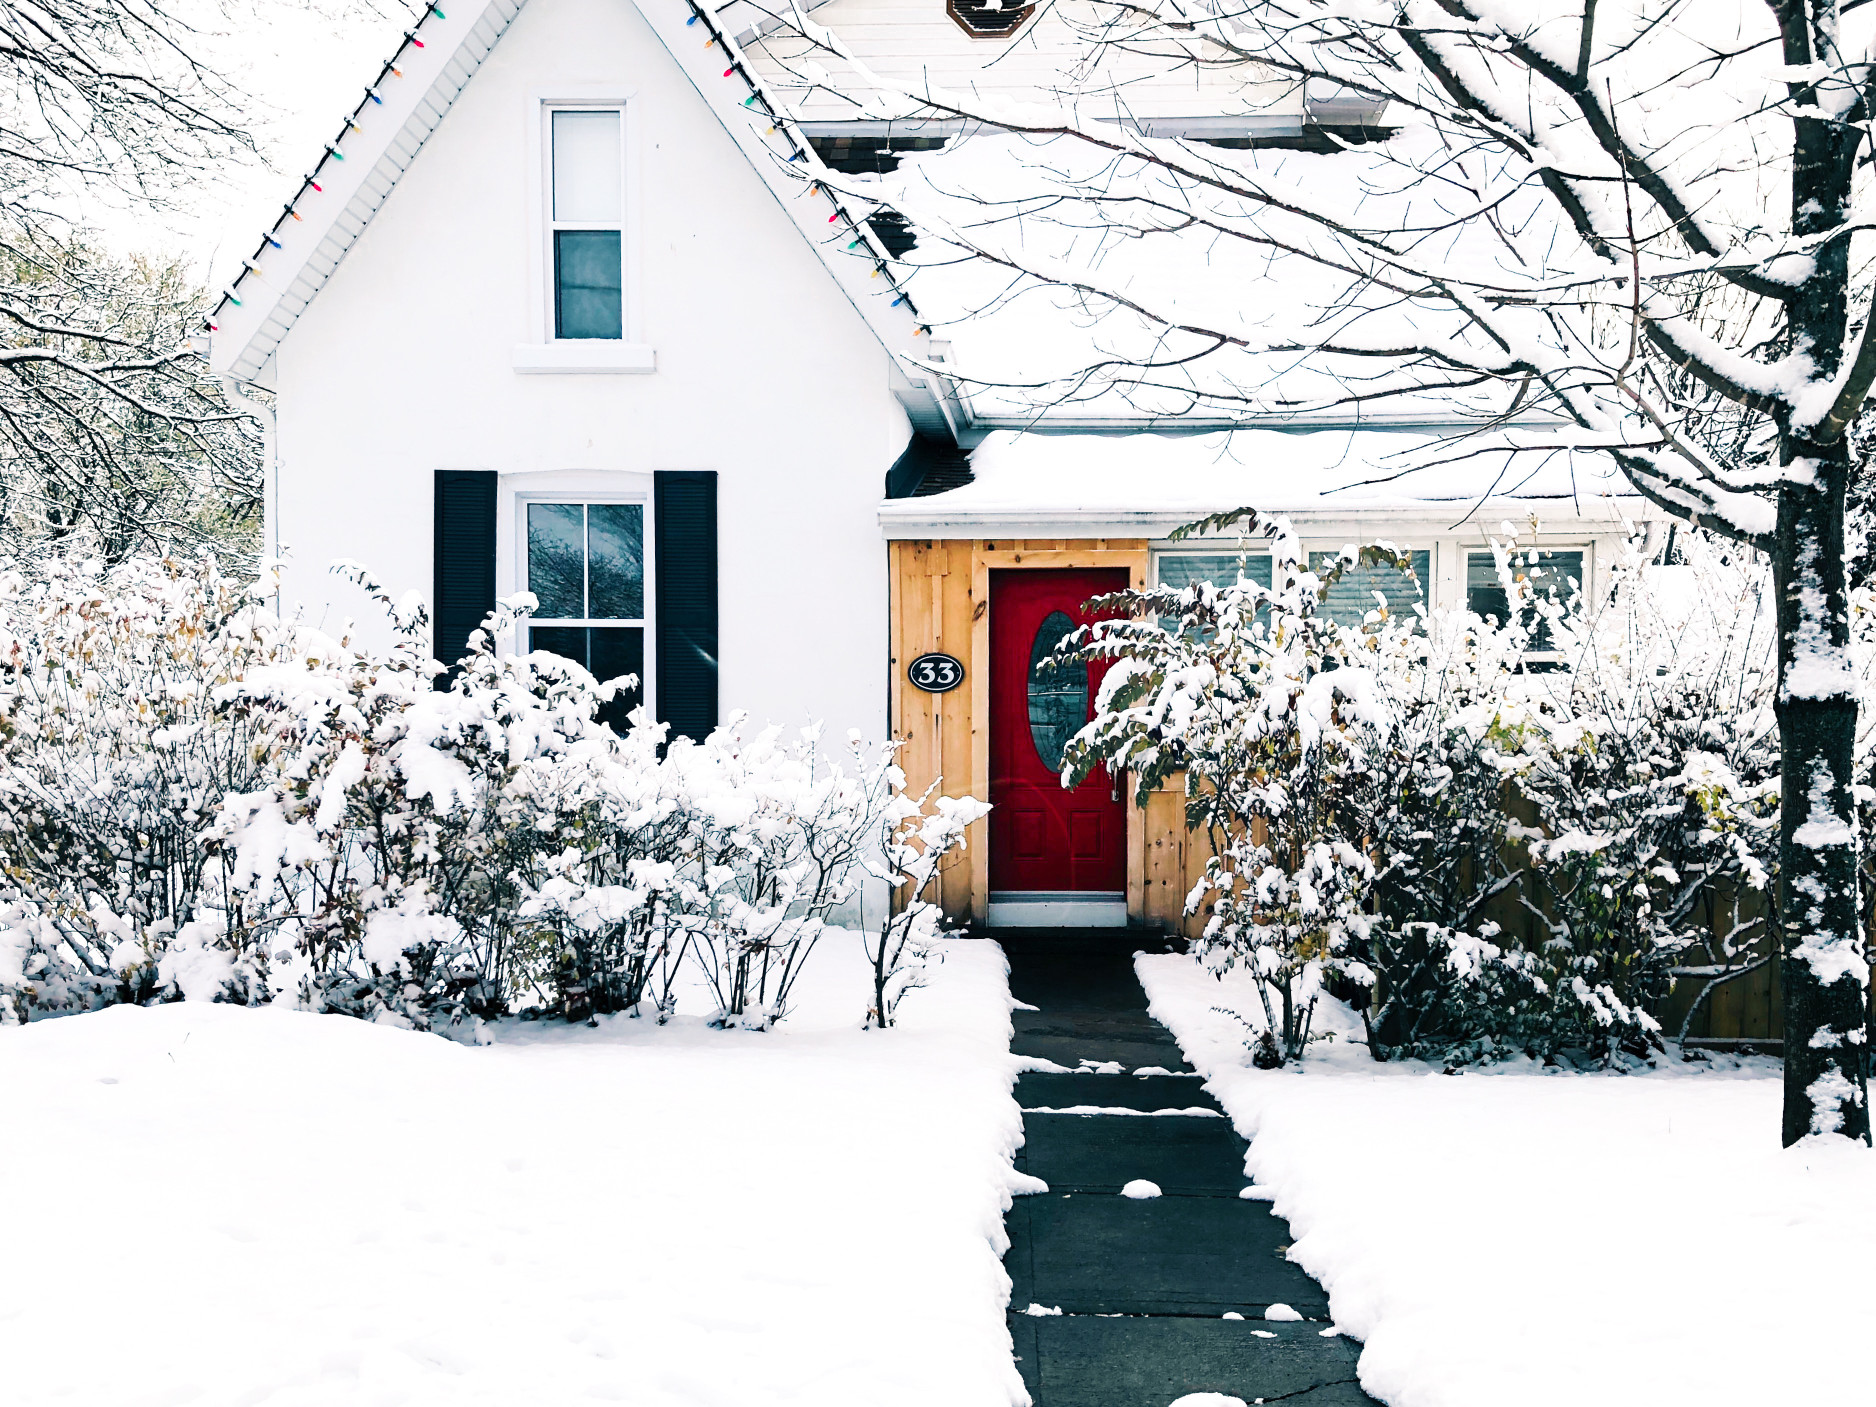 winter snow on a house